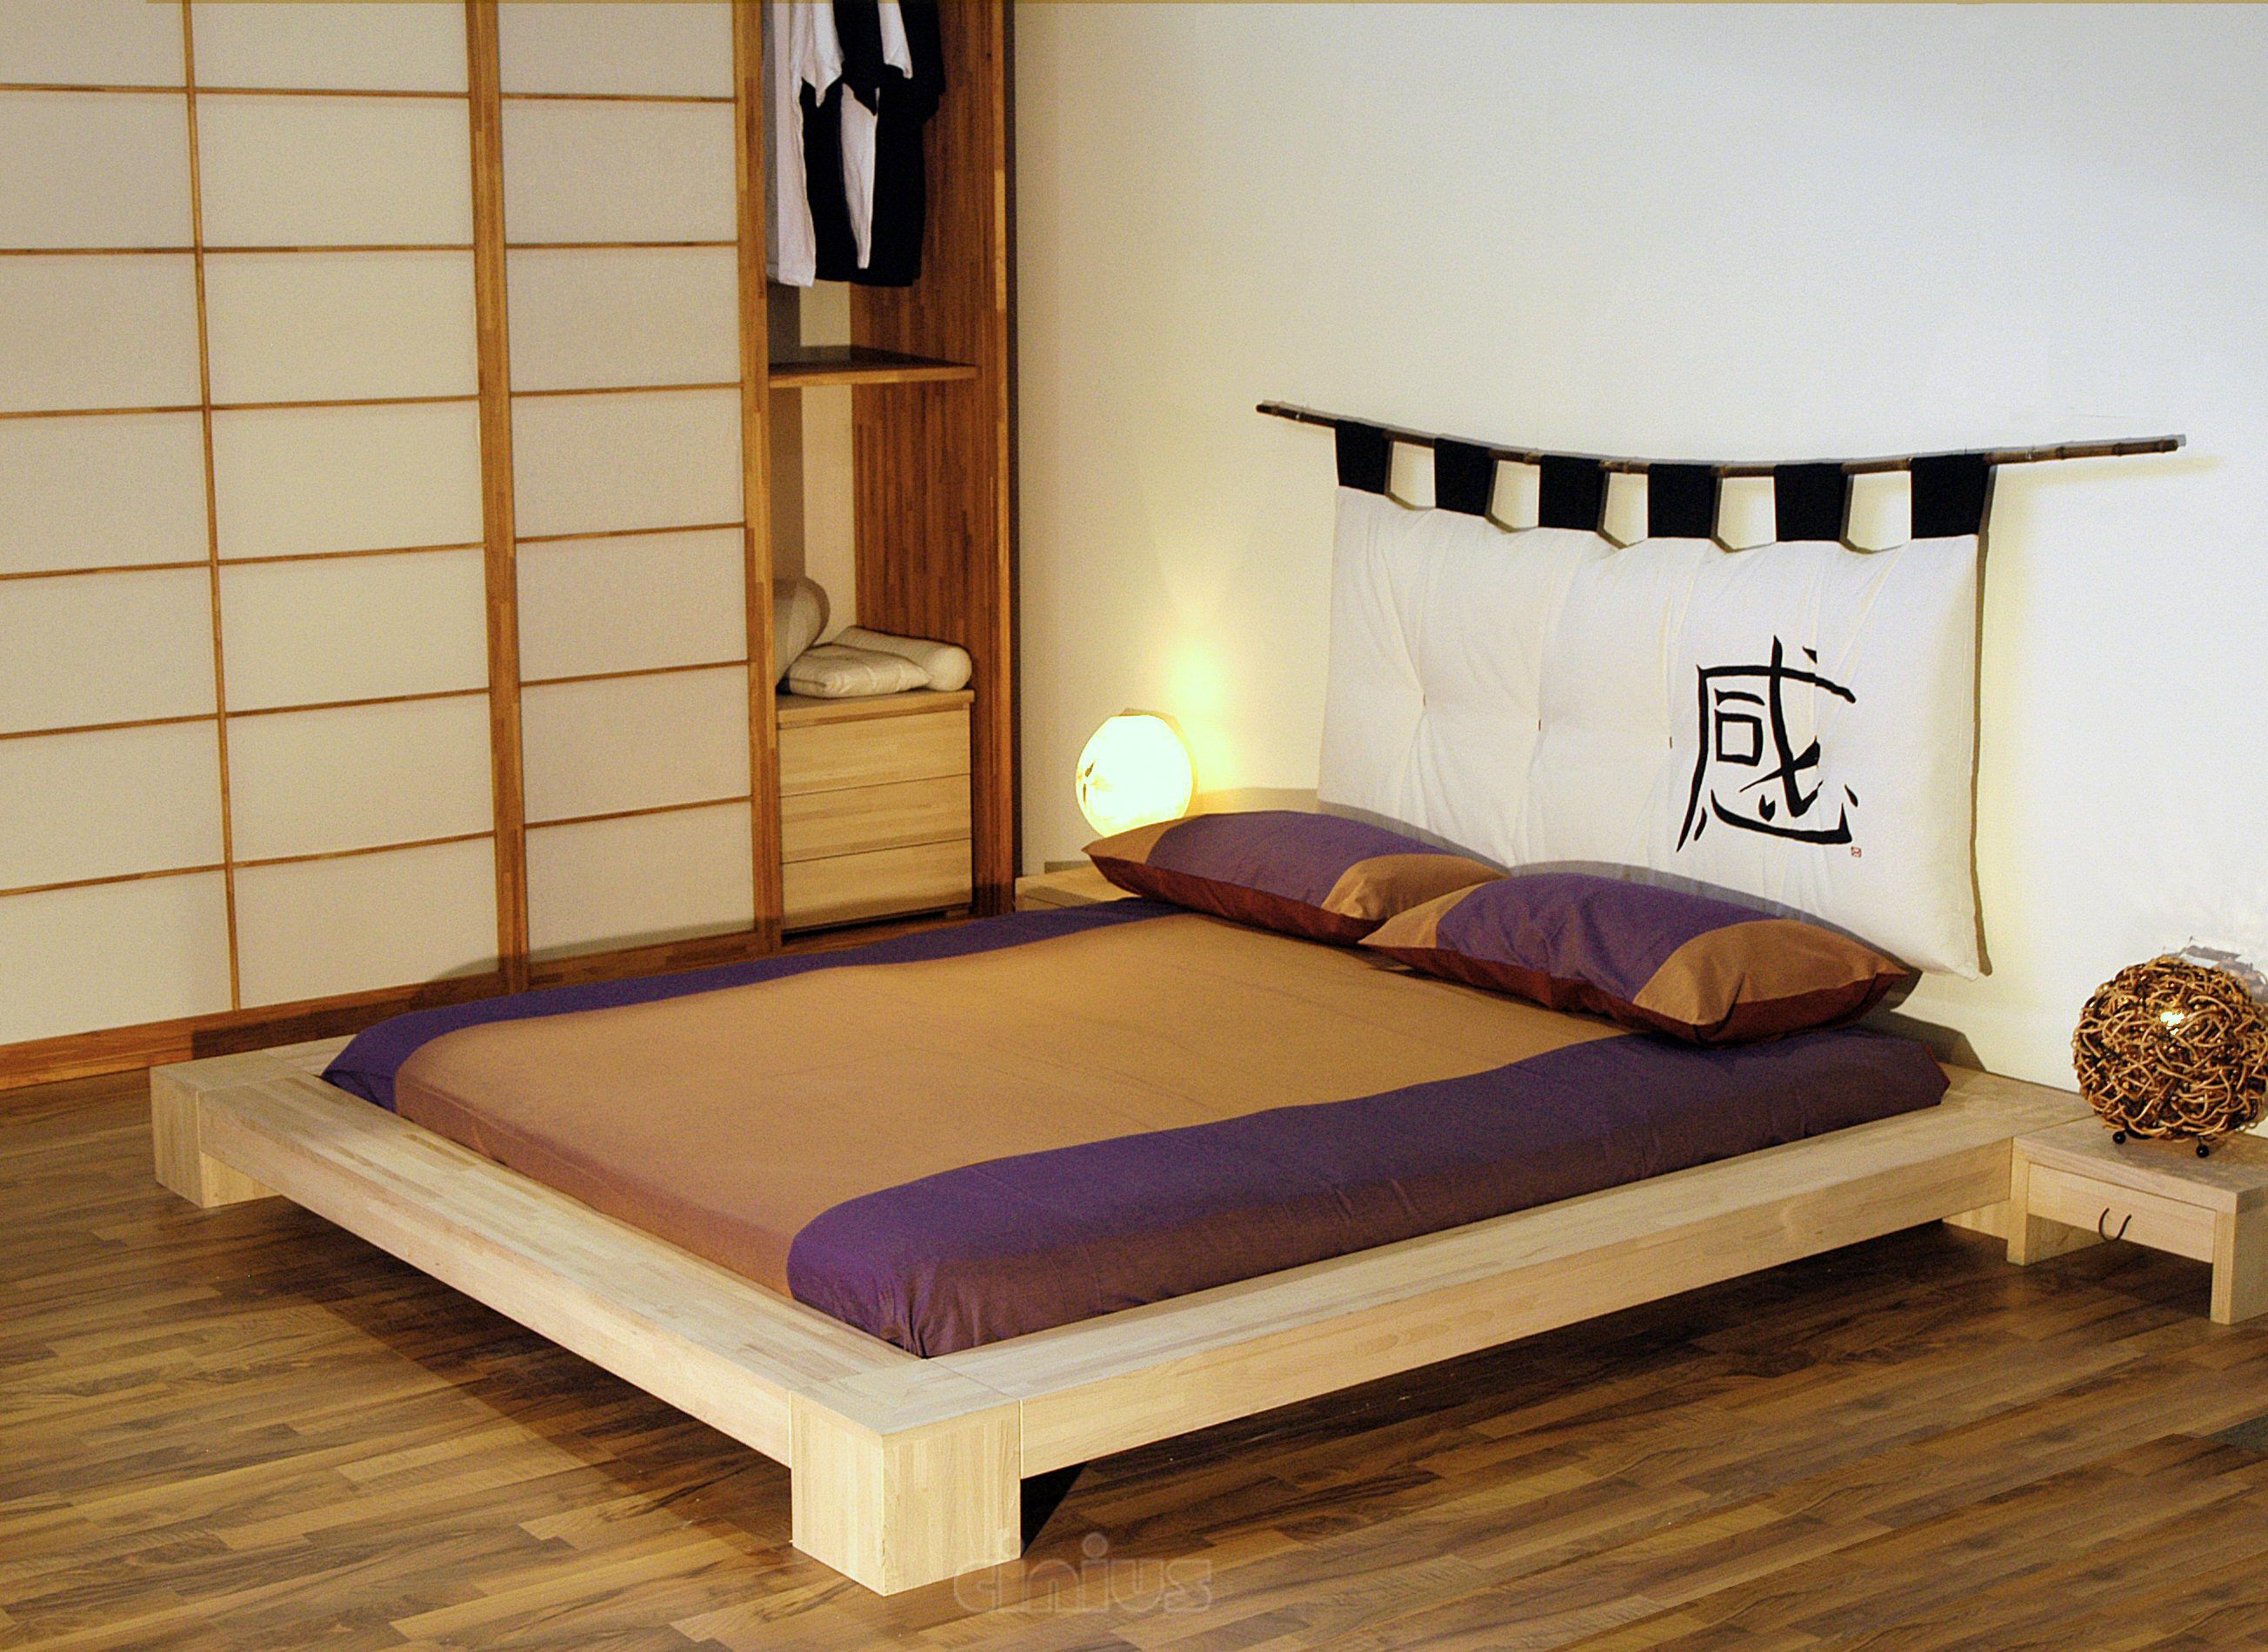 i bedroom bed e etc u polo futons furniture mat n haiku g japanese pinterest and stores t d s pin r futon f ikea tatami